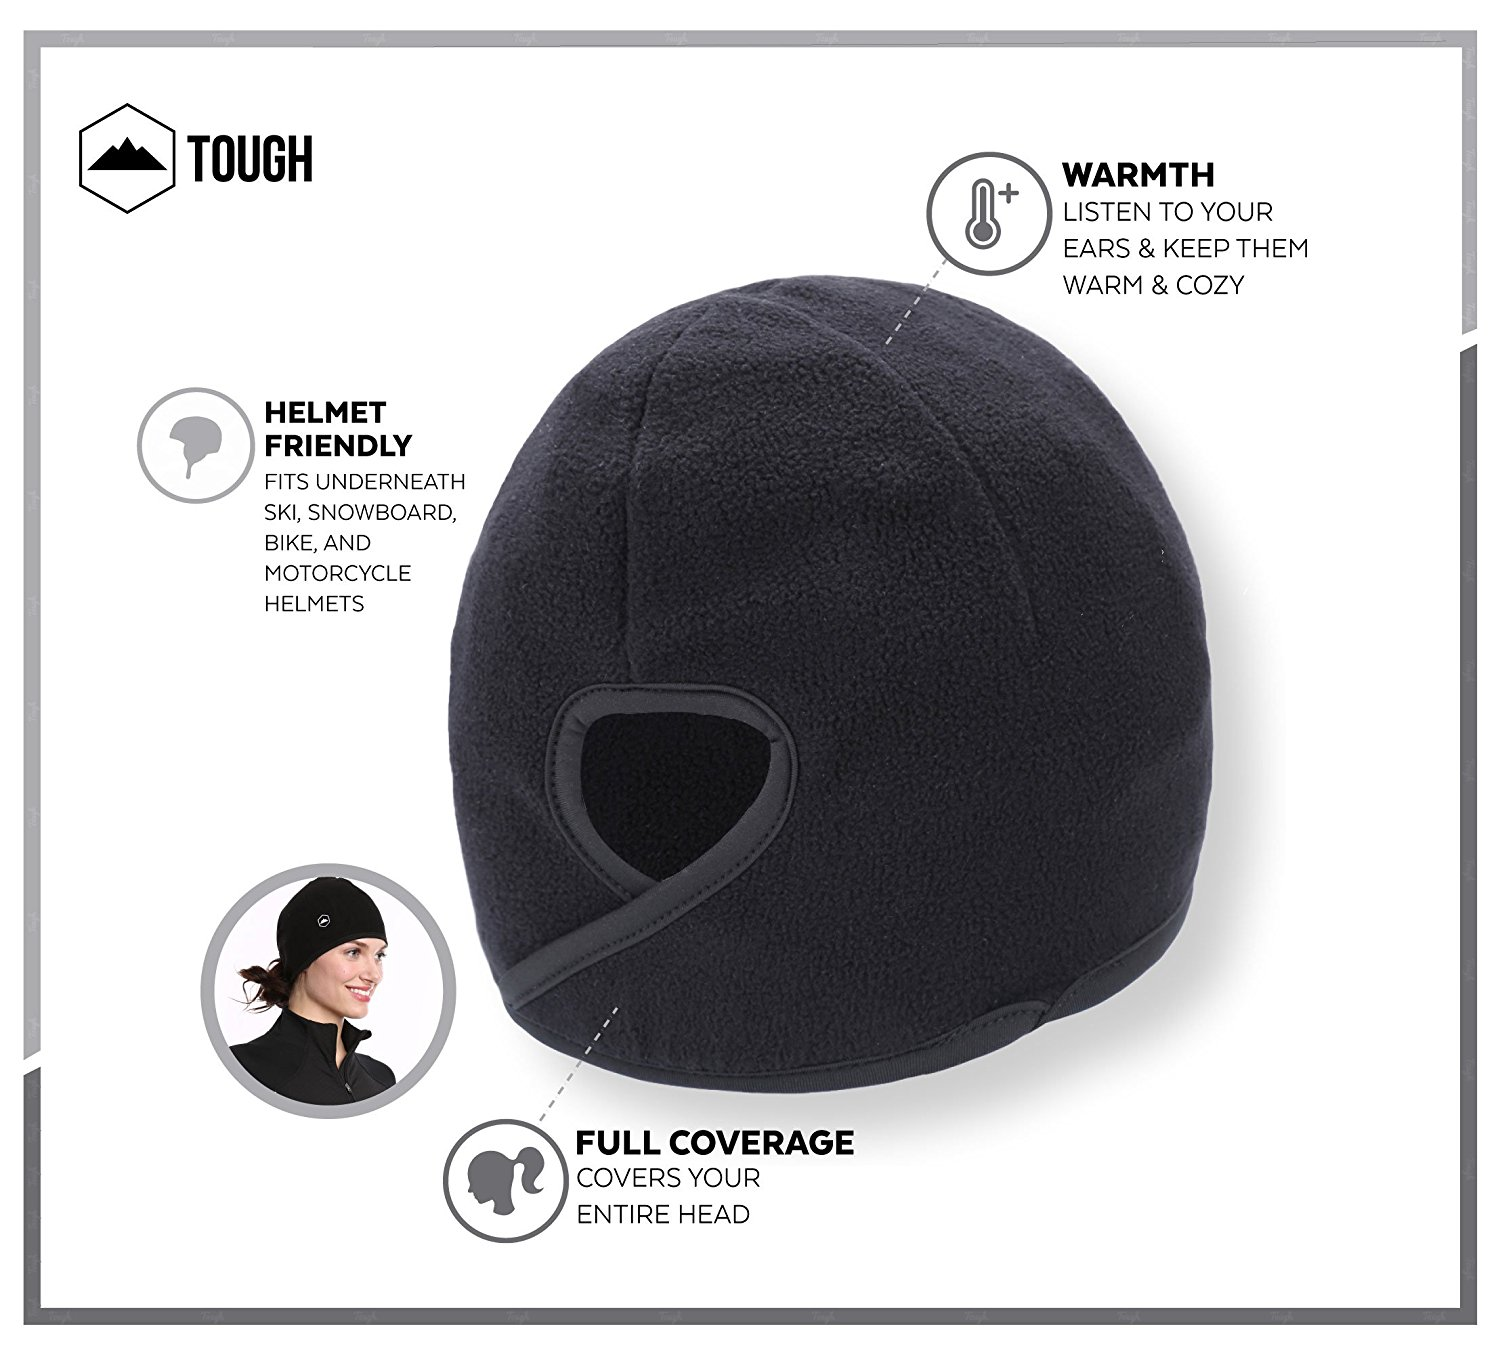 Tough Headwear Helmet Liner Skull Cap Beanie with Ear Covers Perfect for Running Cycling Fits Under Helmets Skiing /& Winter Sports Ultimate Thermal Retention and Performance Moisture Wicking